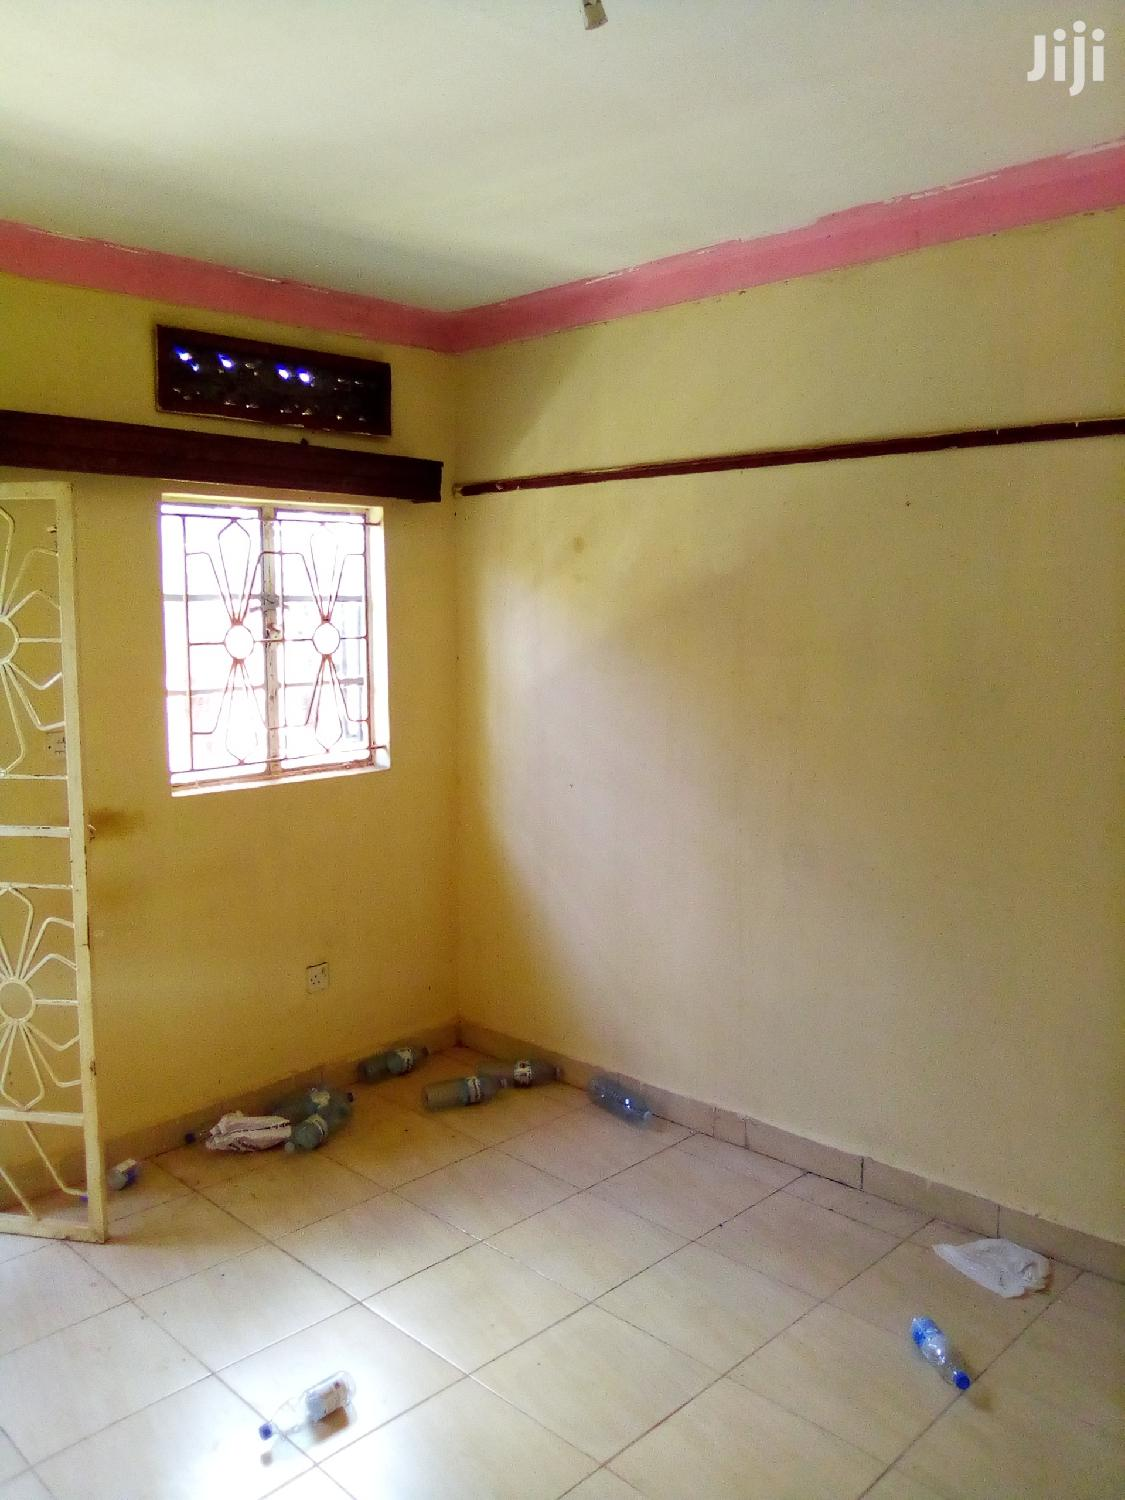 Single Room Apartment For Rent In Mutungo | Houses & Apartments For Rent for sale in Kampala, Central Region, Uganda